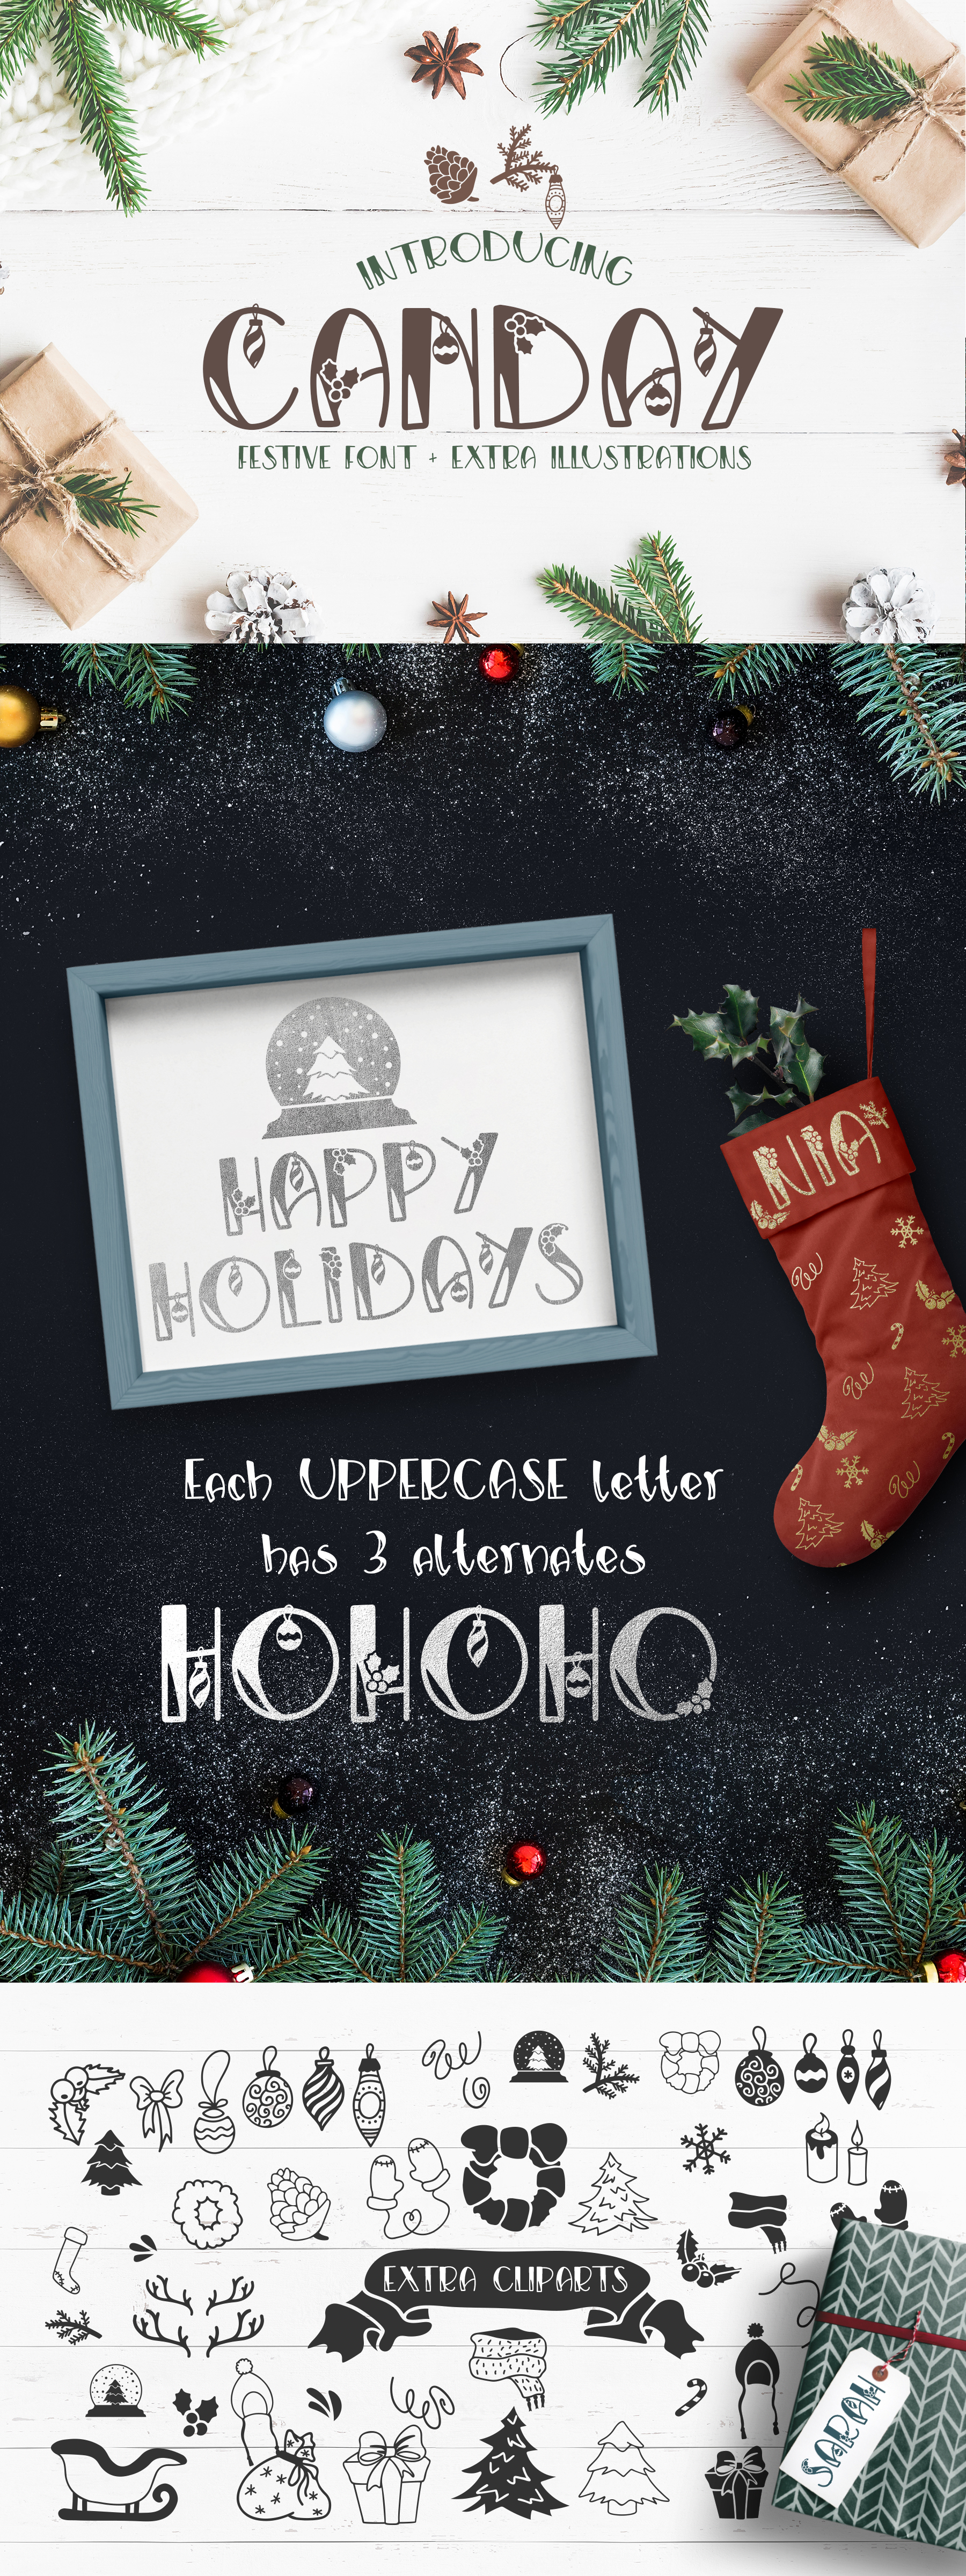 Canday - Festive Font with Extras example image 8